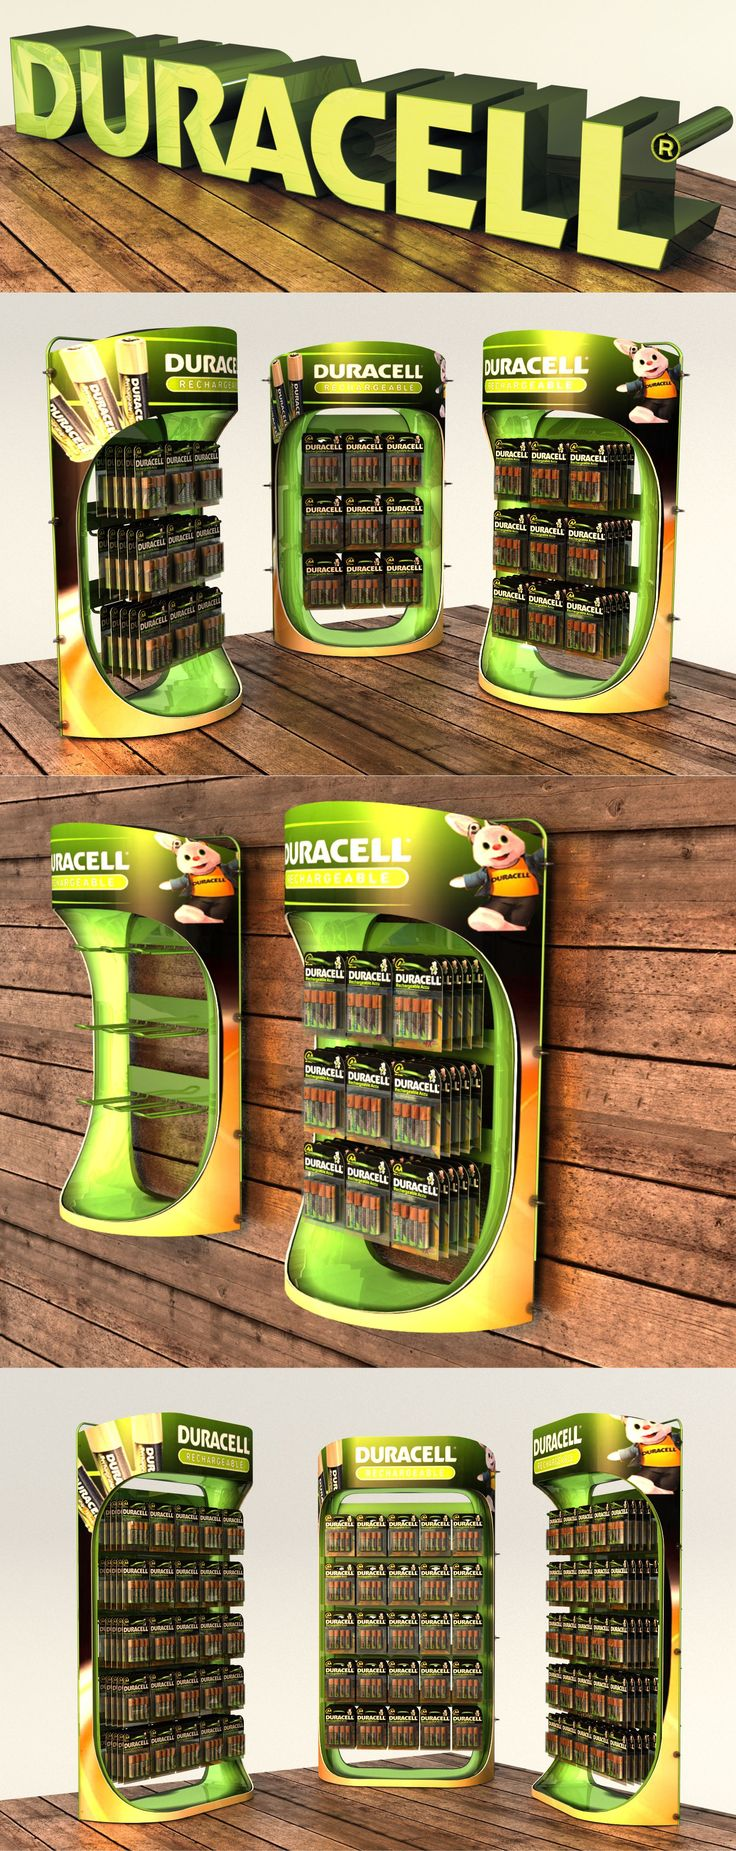 Duracell CTU, POS, POP. Point of sale. Point of purchase. By Lance Eggersglusz